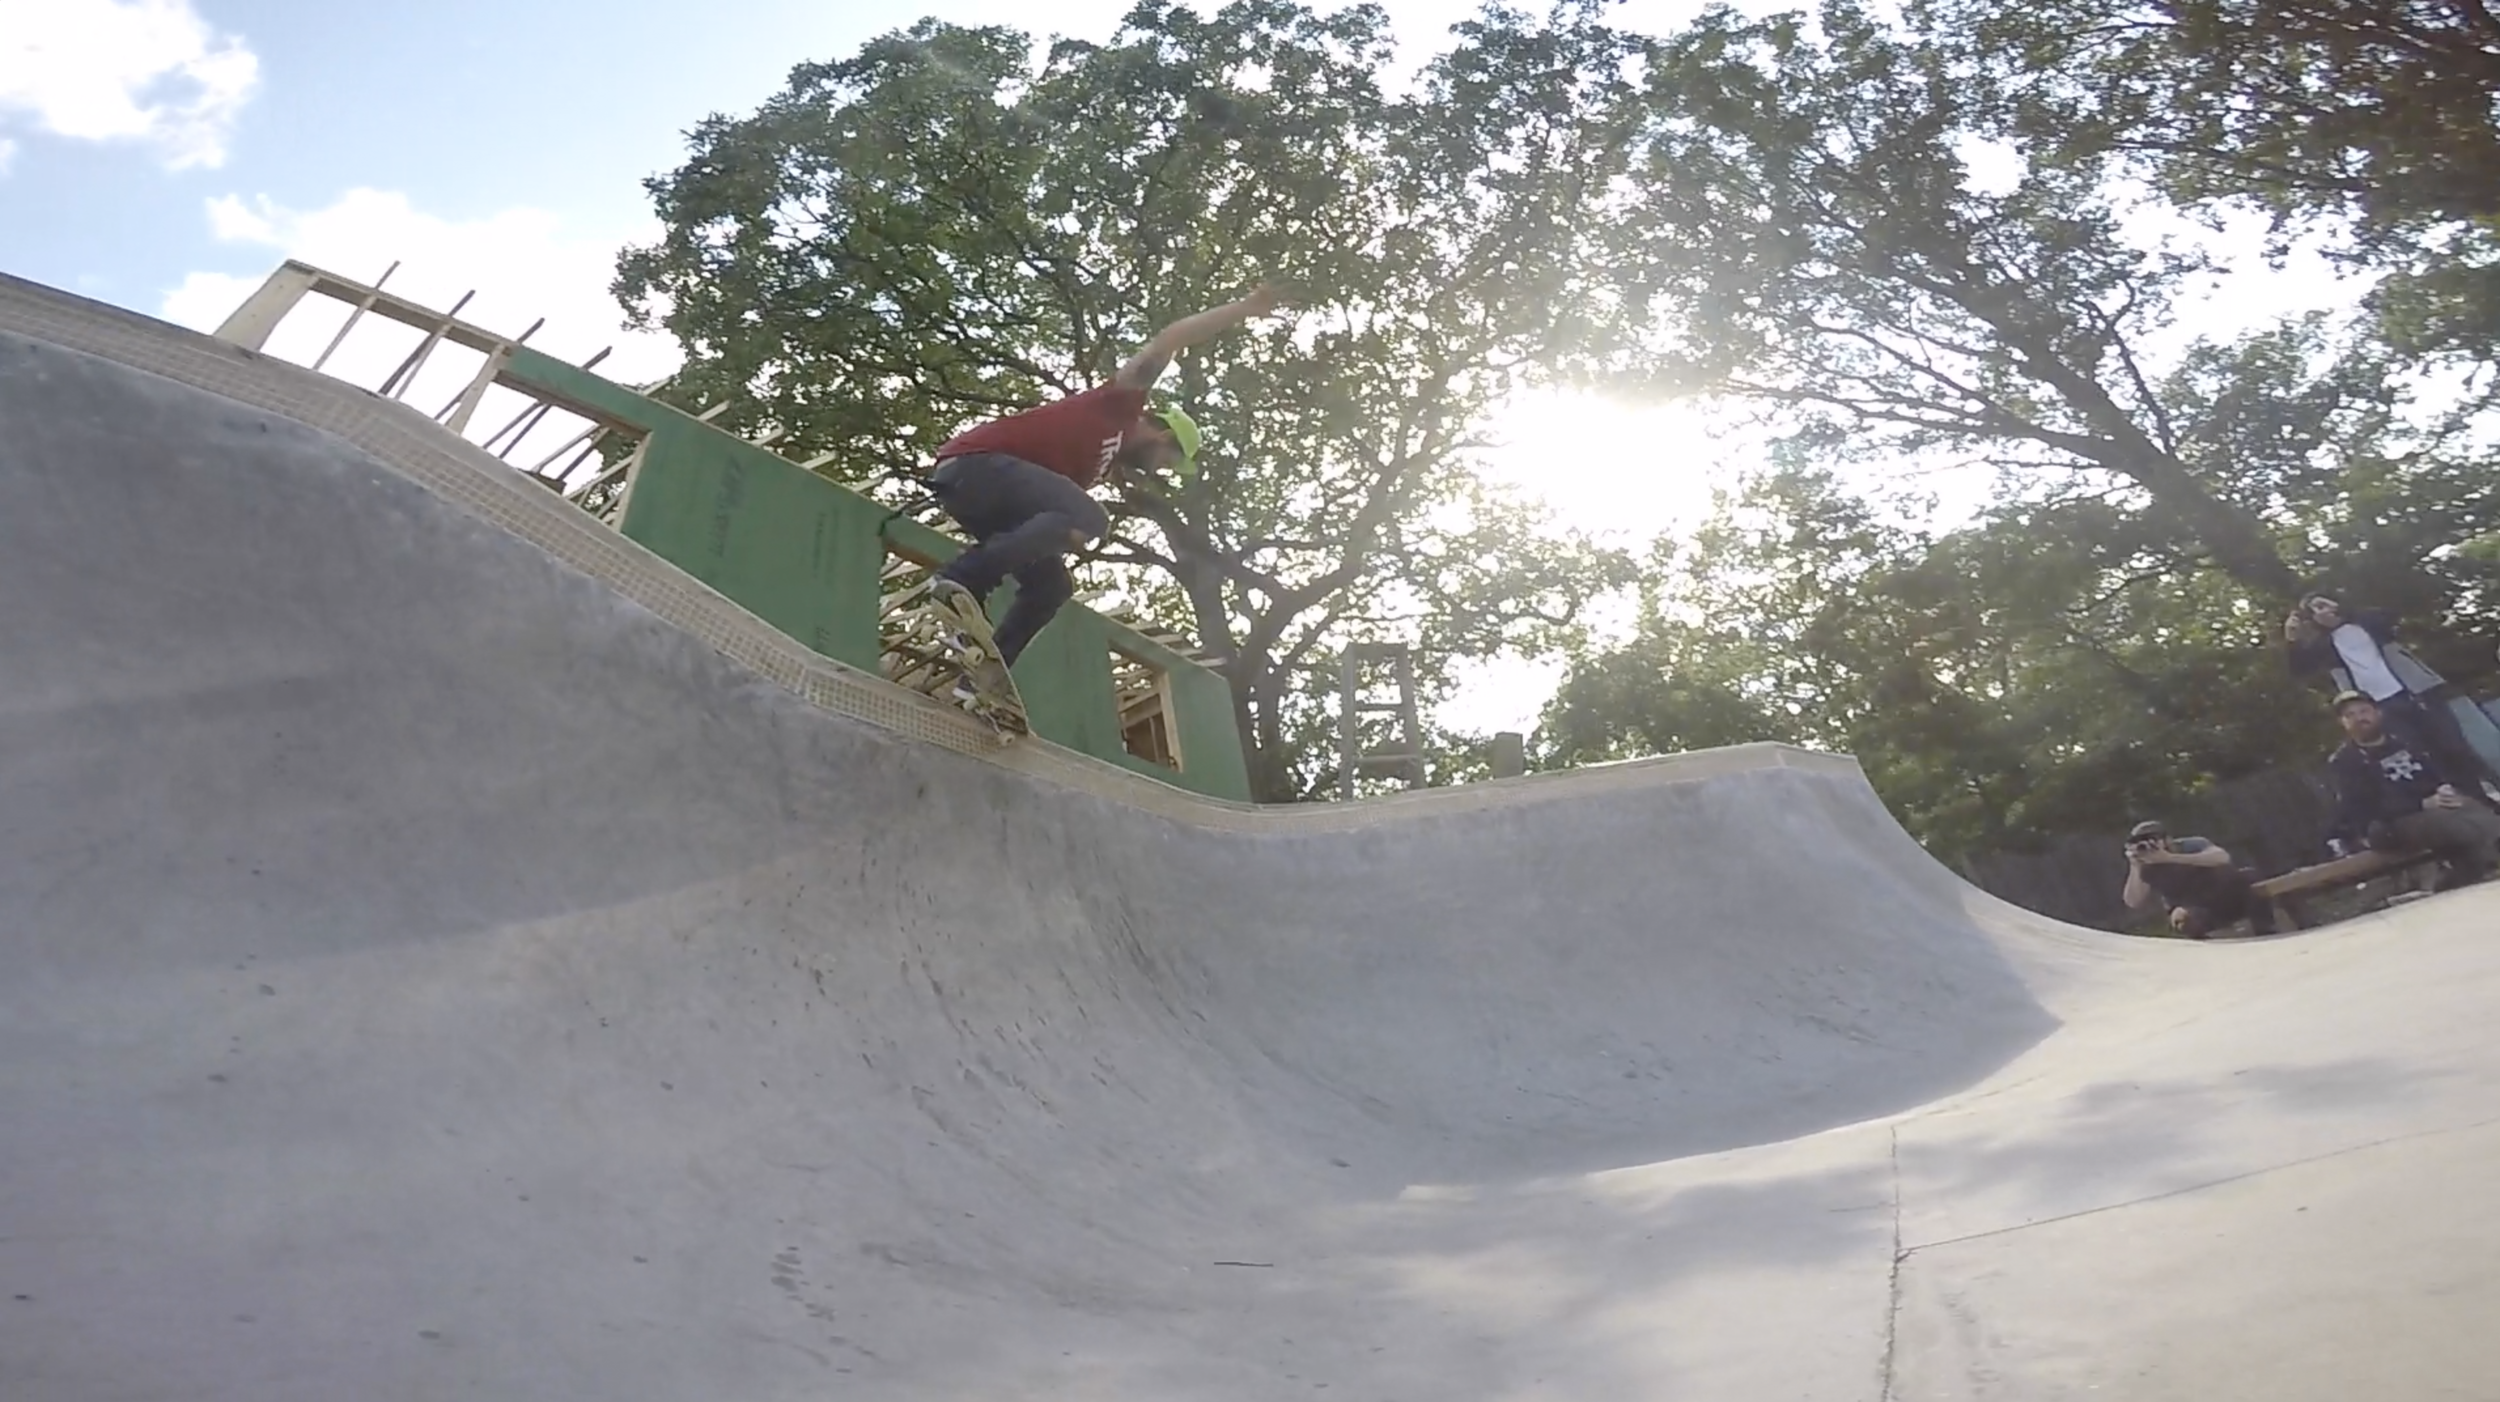 Dave Kaule - Crooked grind to fakie